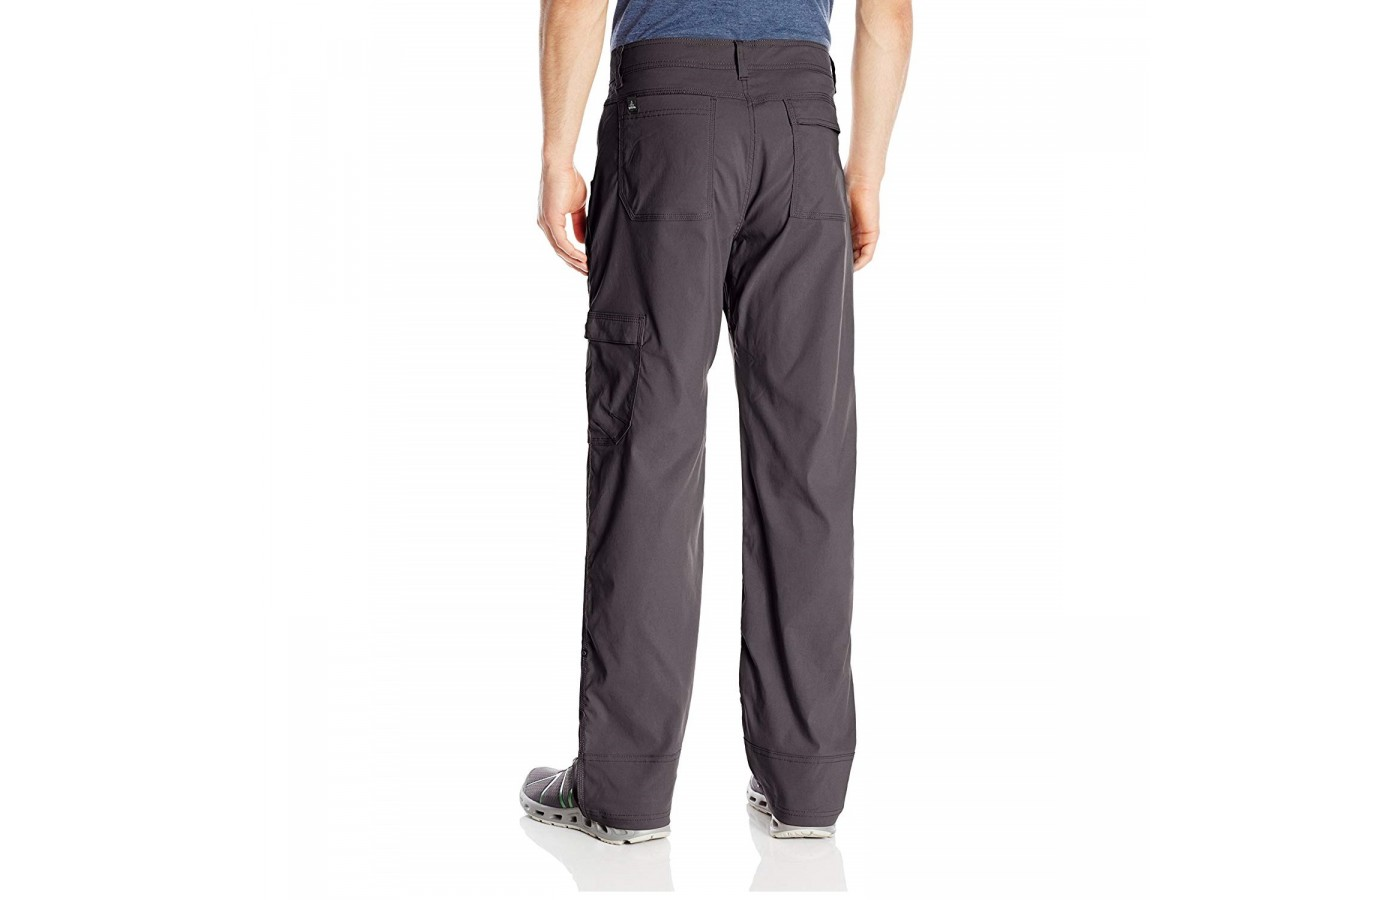 The Prana Stretch Zion offers ventilation inseam gussets for better ventilation.